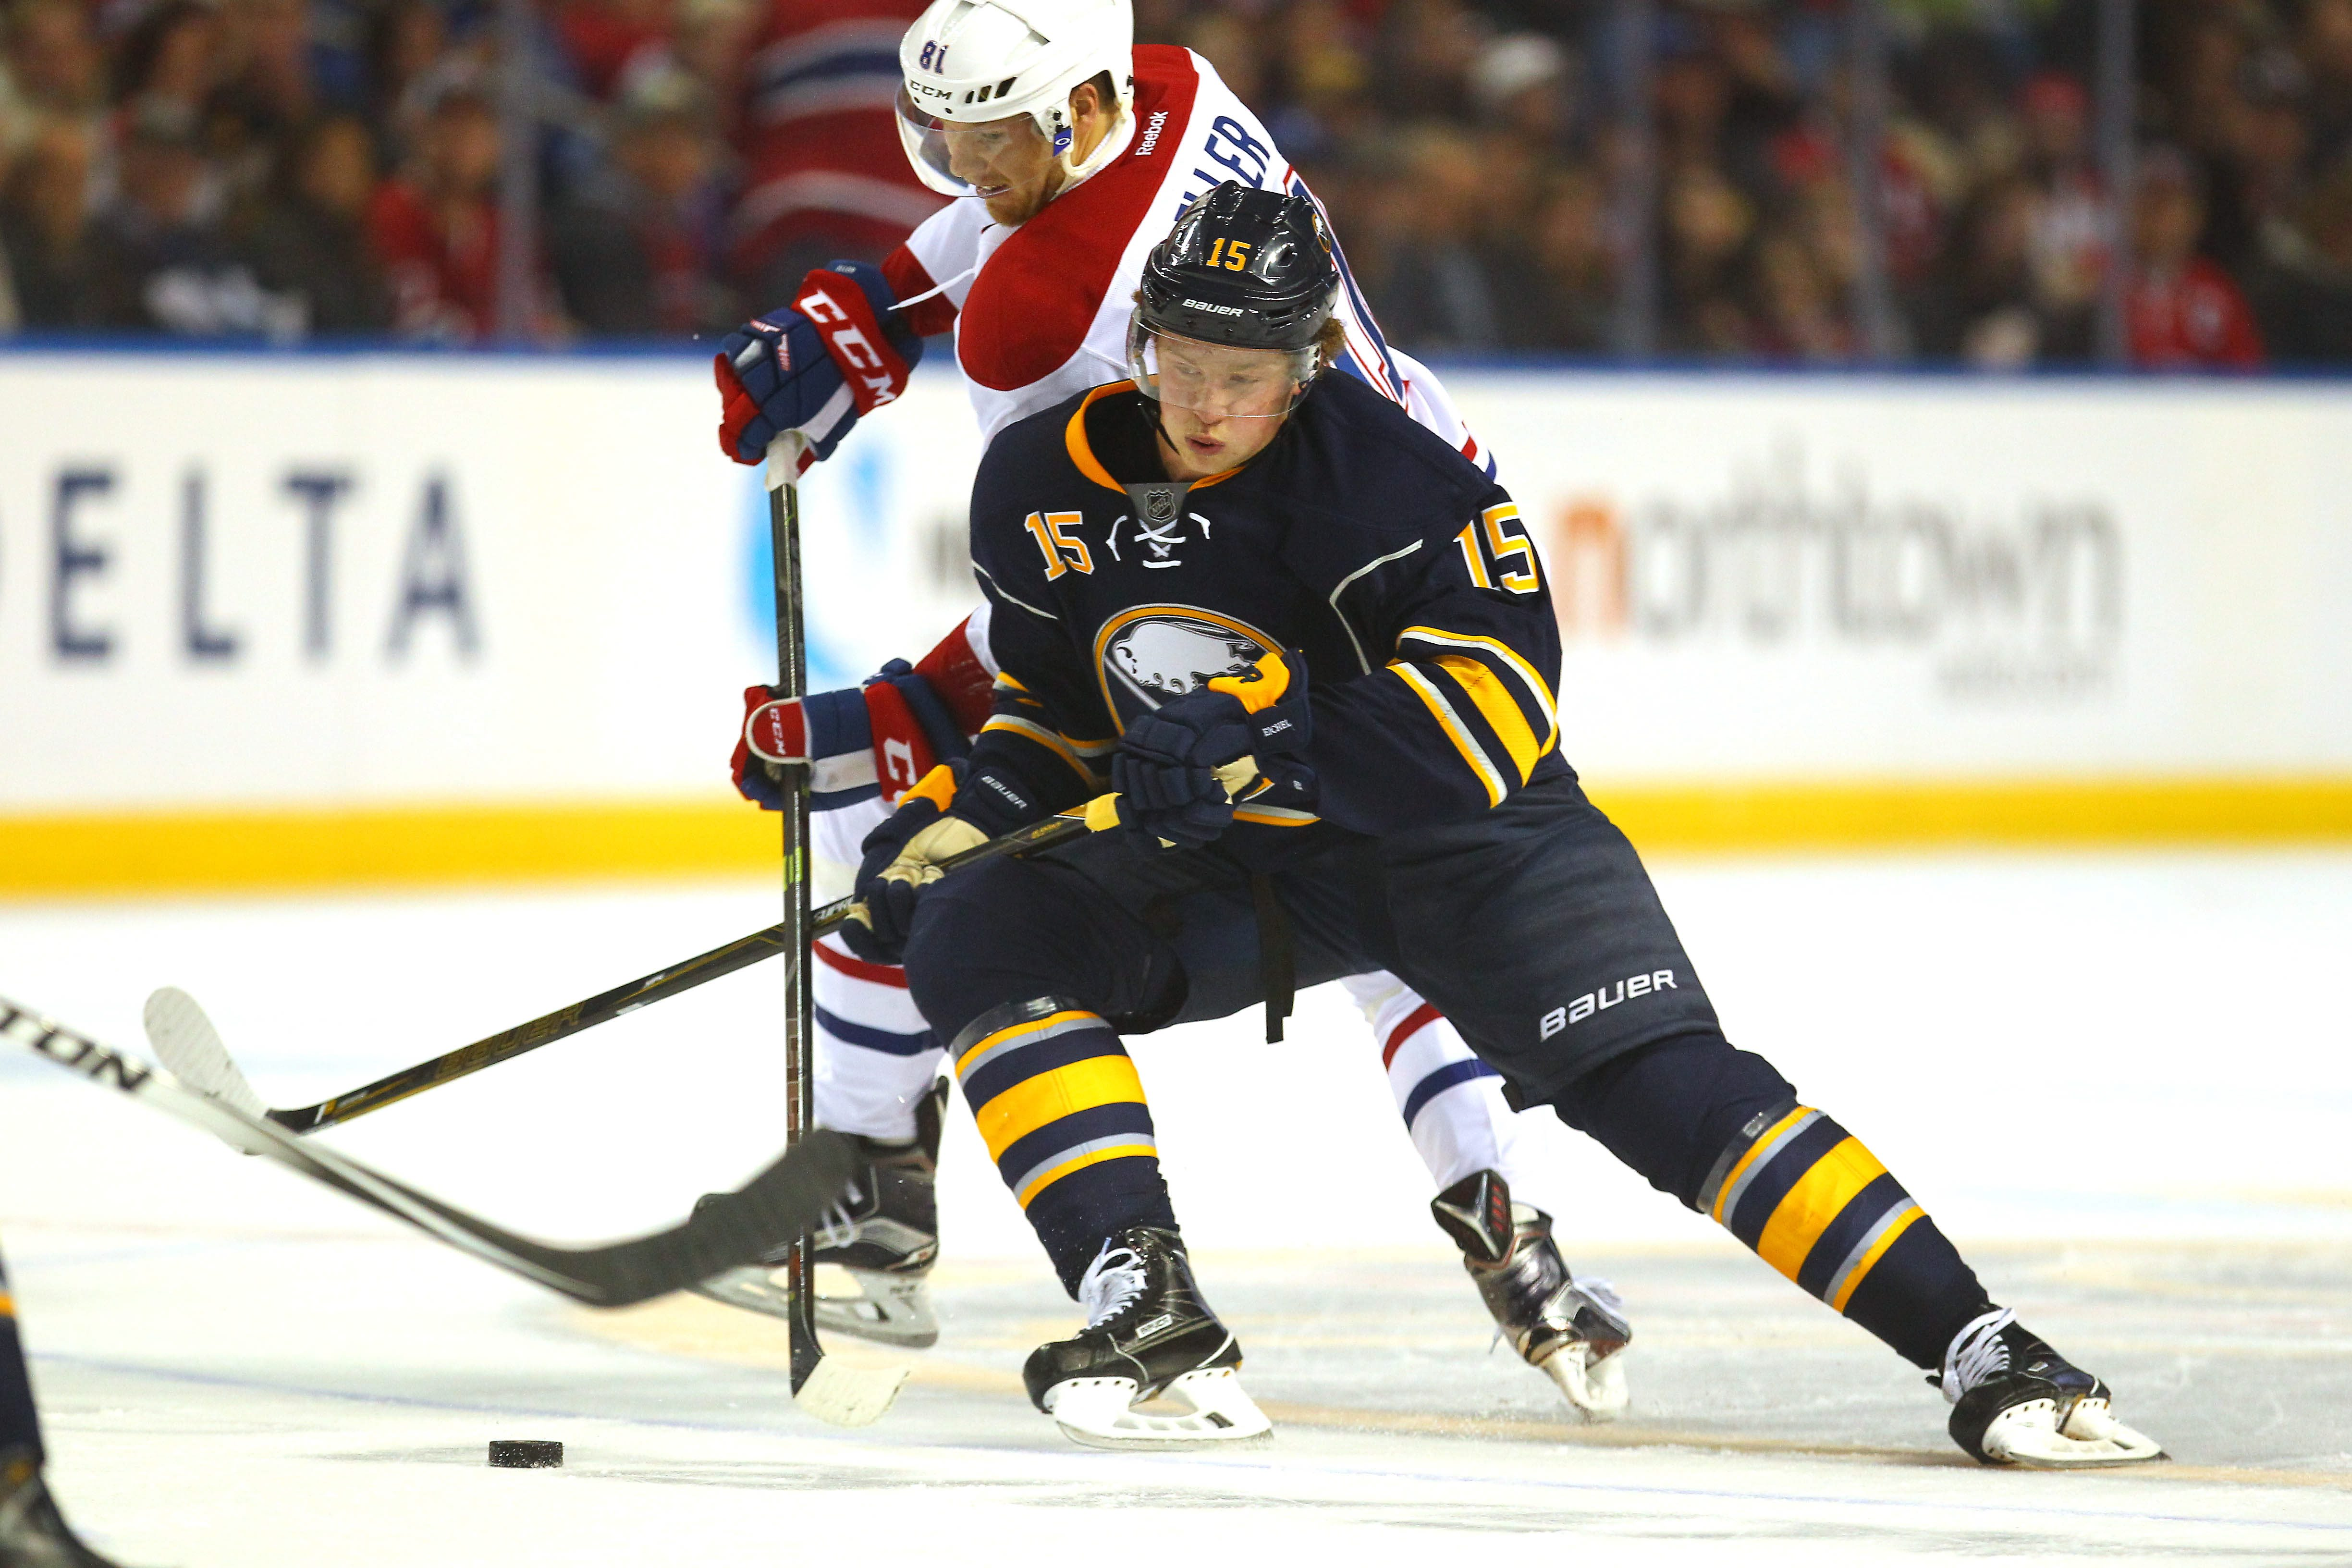 Jack Eichel and the Buffalo Sabres will open the season at home against the Montreal Canadiens on at Thursday (Oct 13), one of many Thursday home dates. (Mark Mulville/Buffalo News)